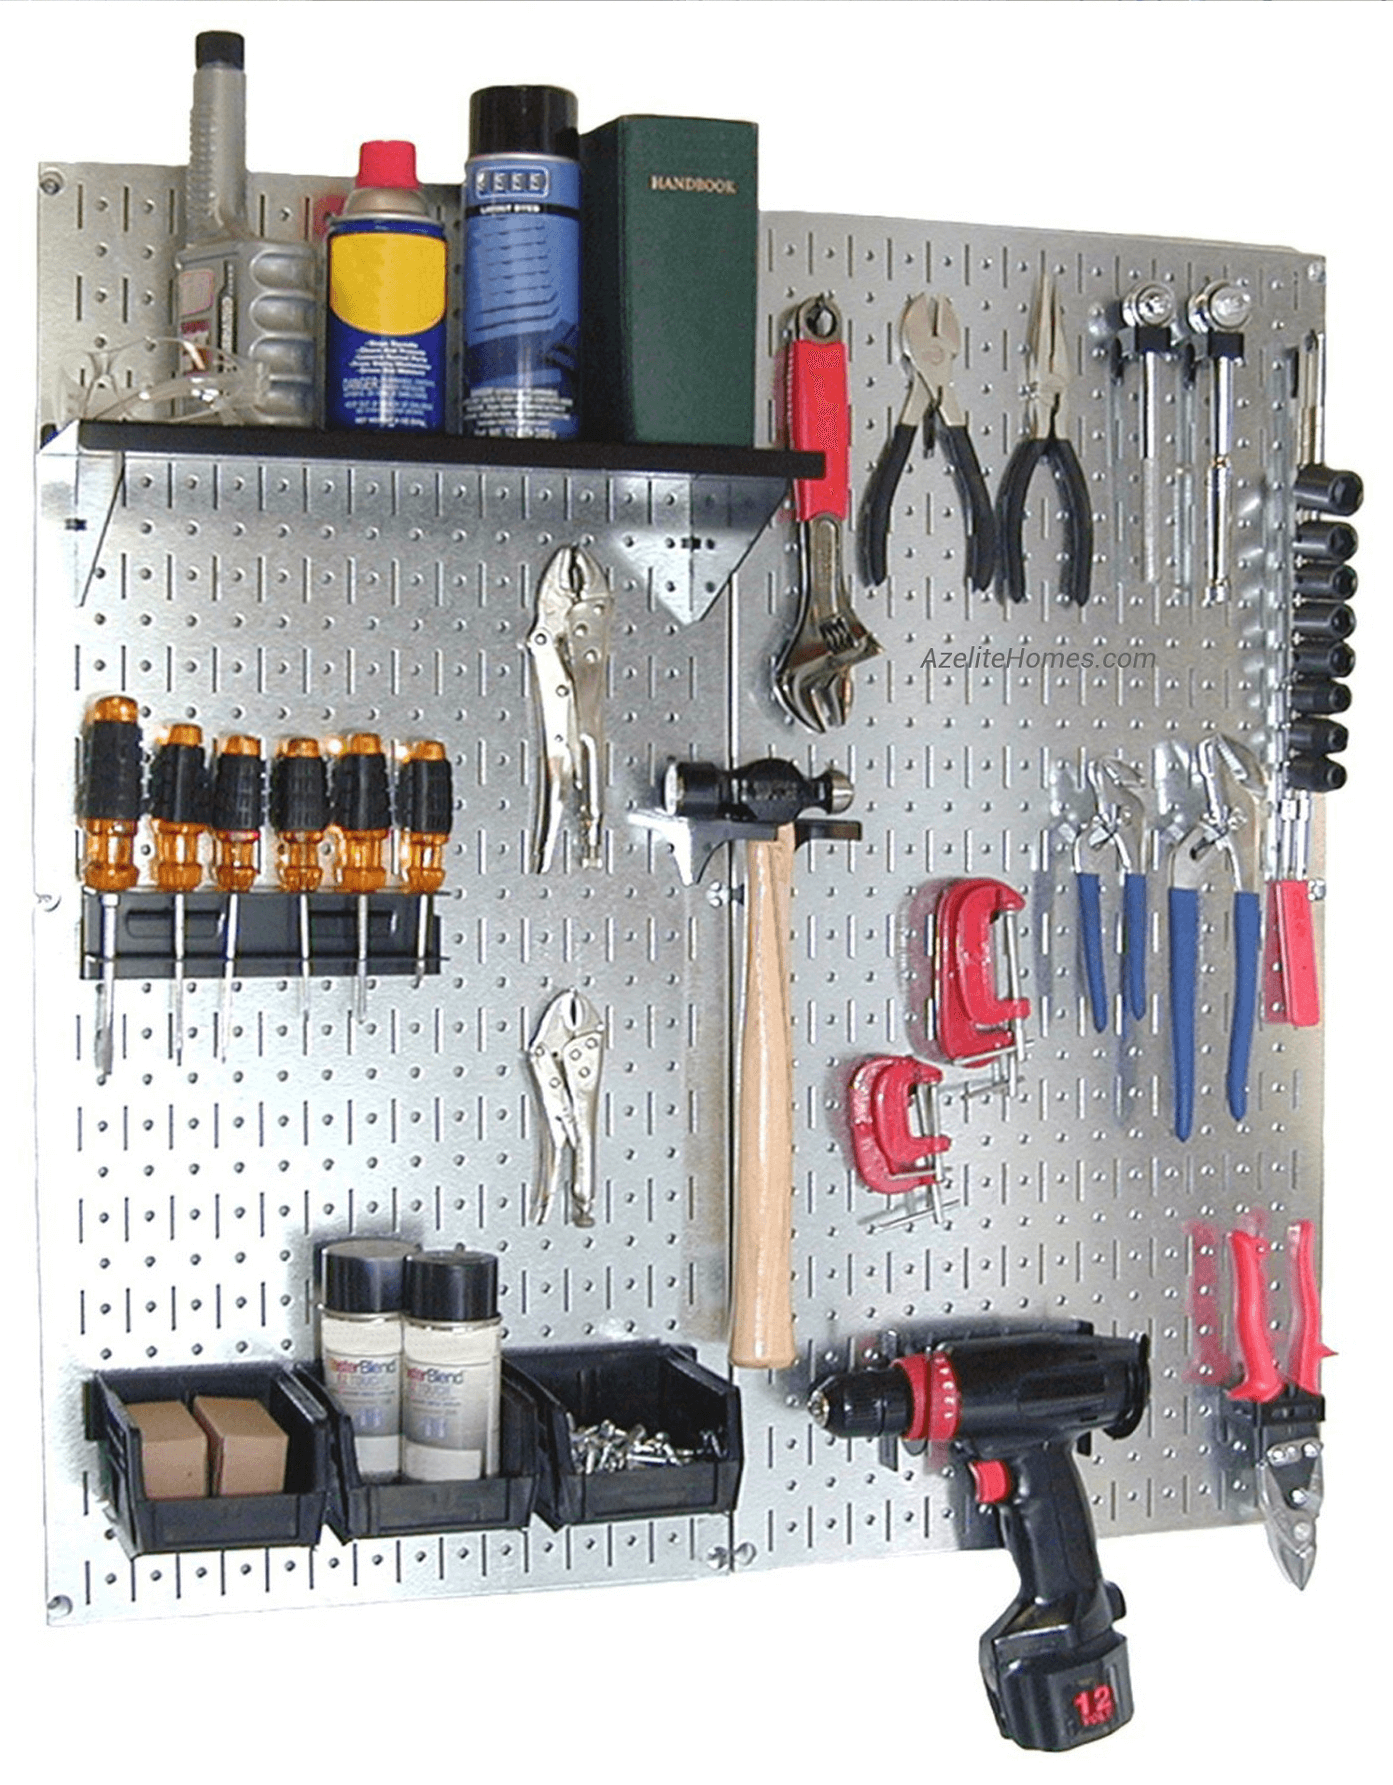 GARAGE MAKEOVER WITH ADDING MAGNETIC STORAGE PANELS